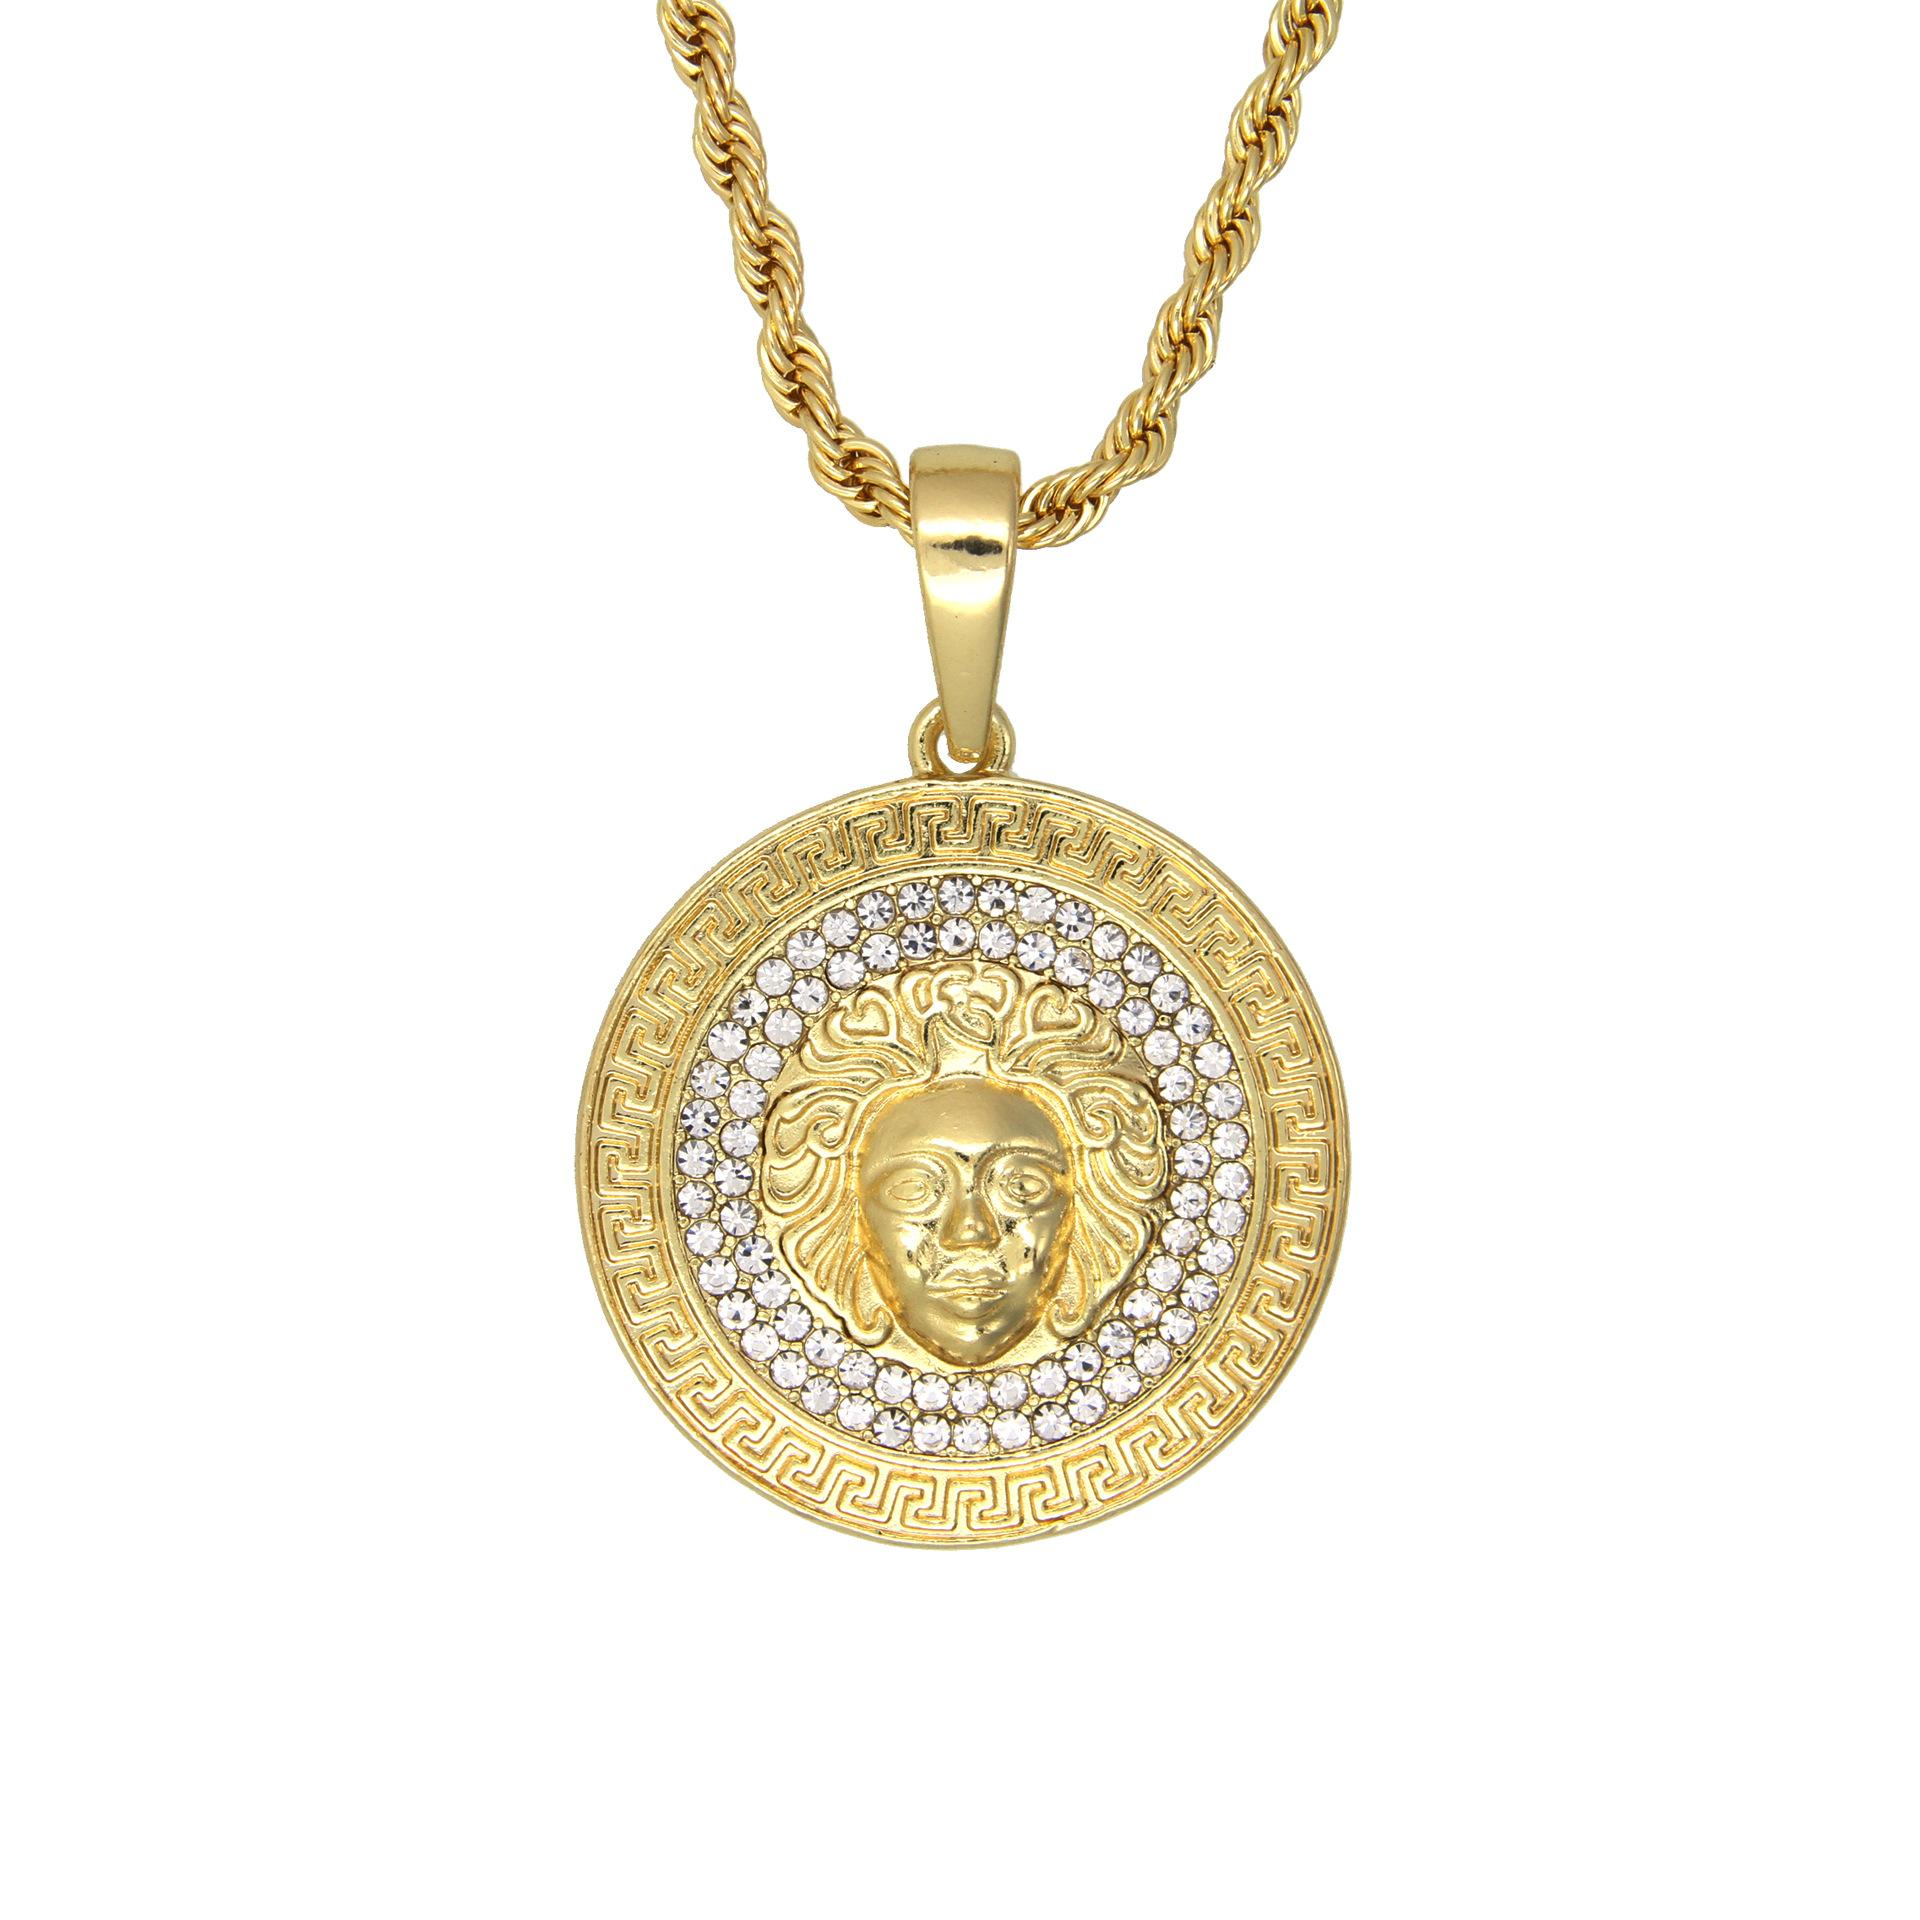 s chain box gold men medallion necklace pin white christopher saint and